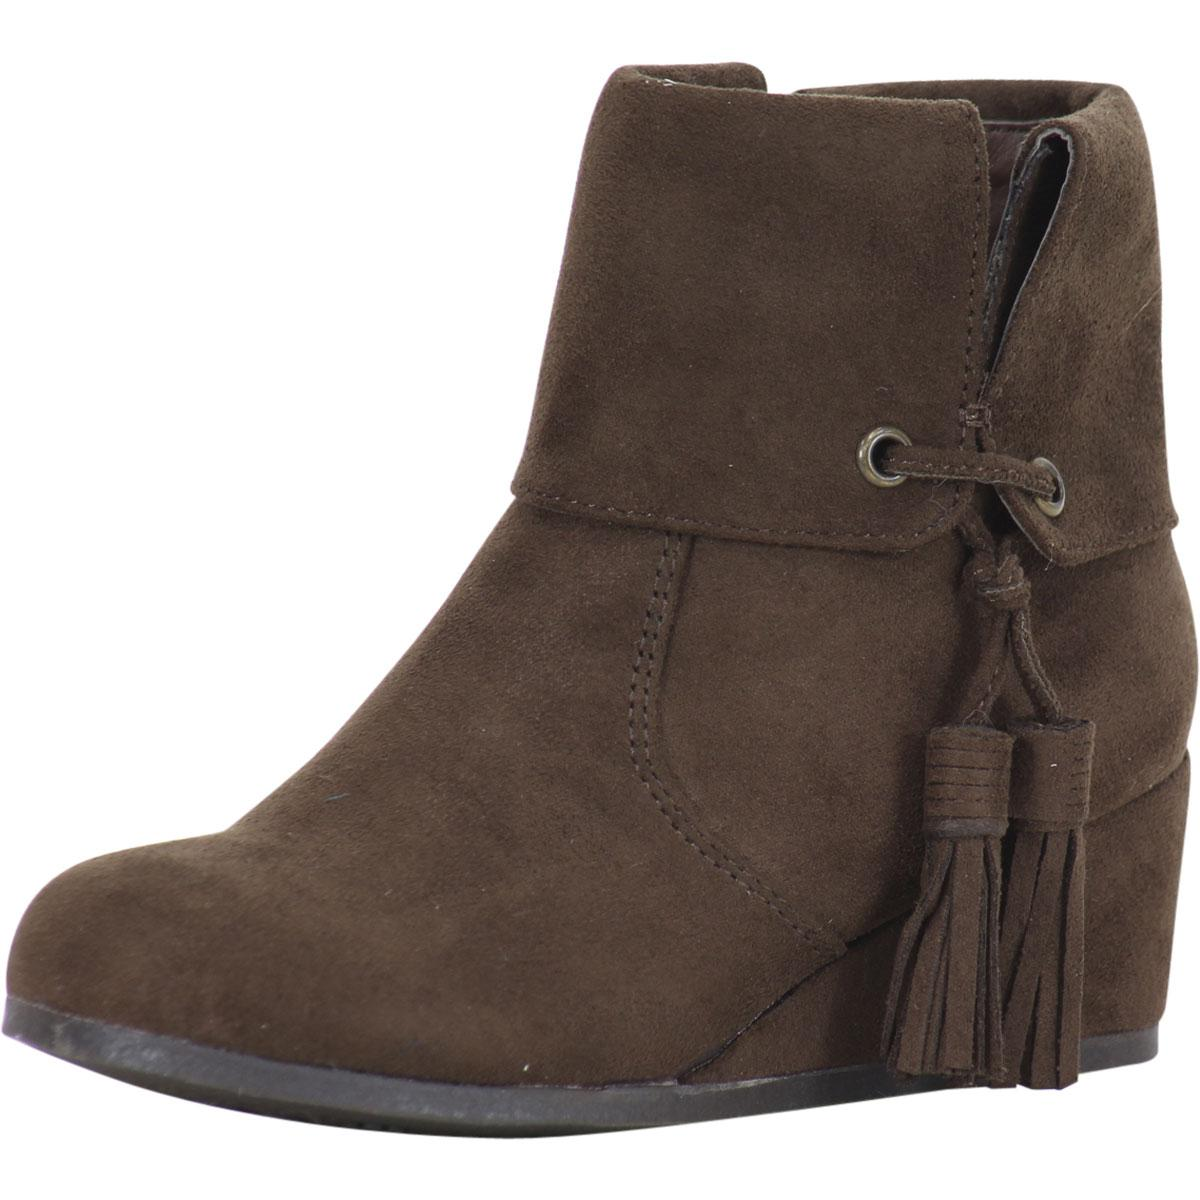 Image of Sugar Little/Big Girl's BonBon Wedge Heel Ankle Boots Shoes - Chocolate - 1 M US Little Kid